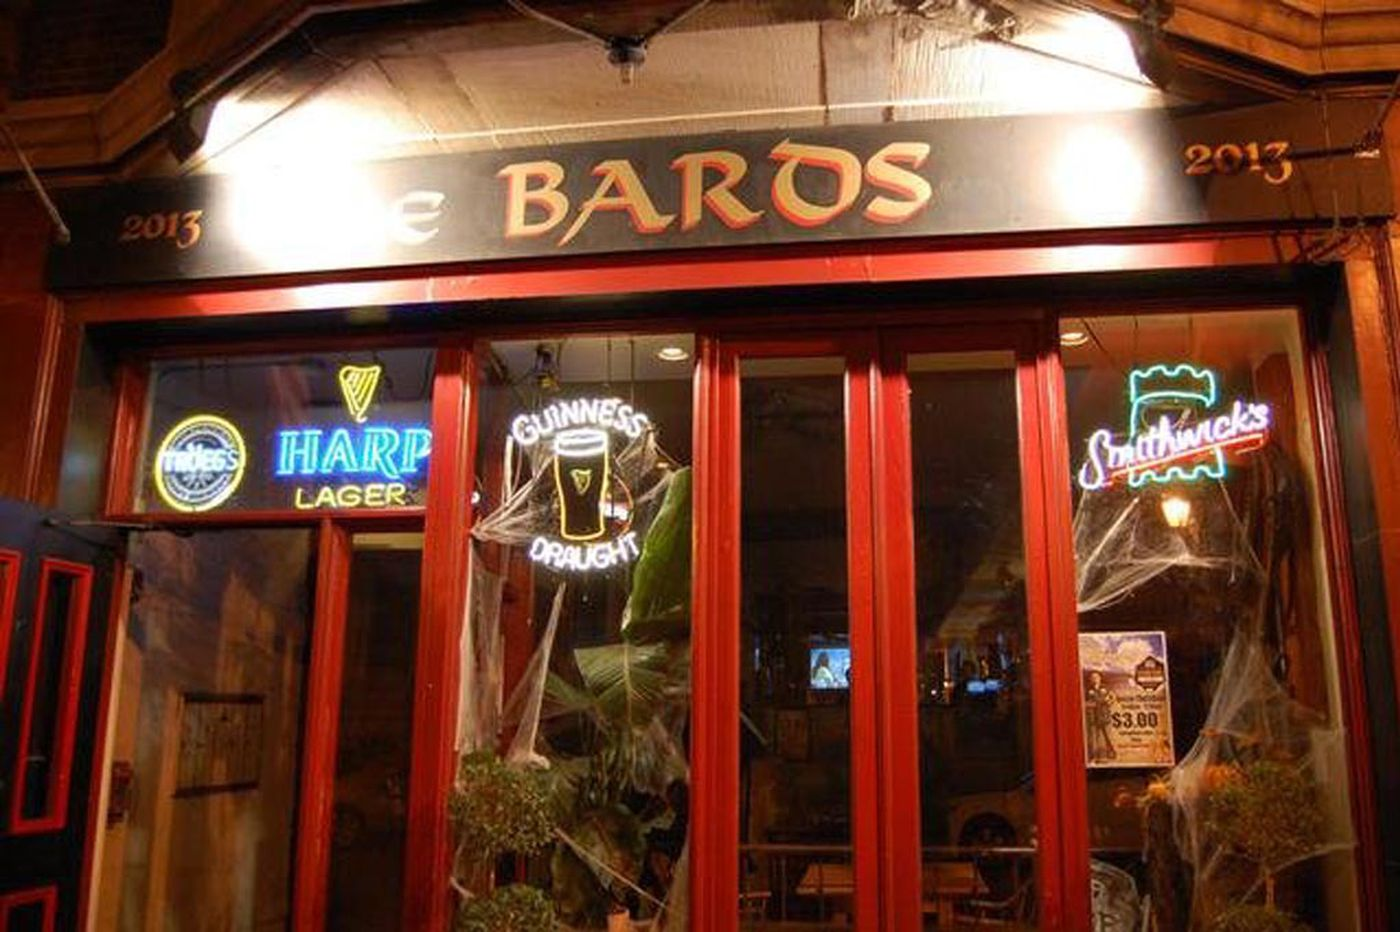 The Bards, in Rittenhouse for nearly 25 years, closes